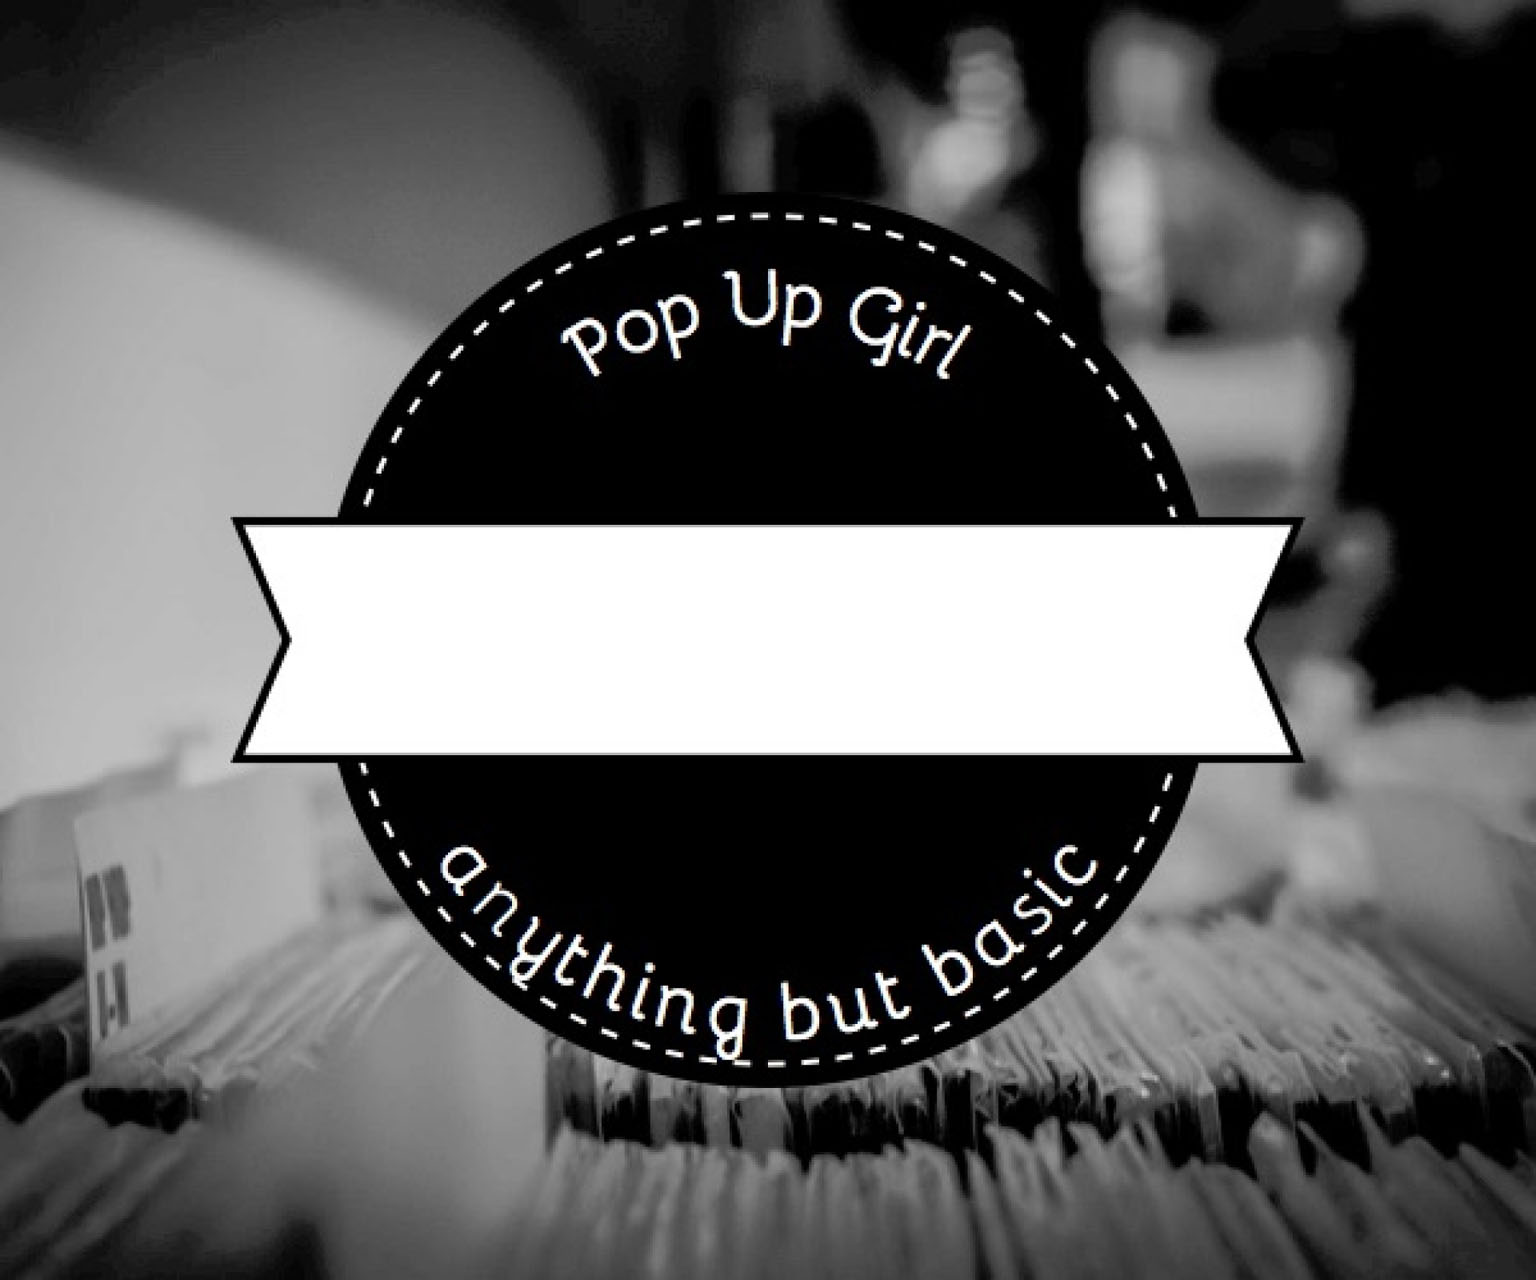 Pop Up Girl